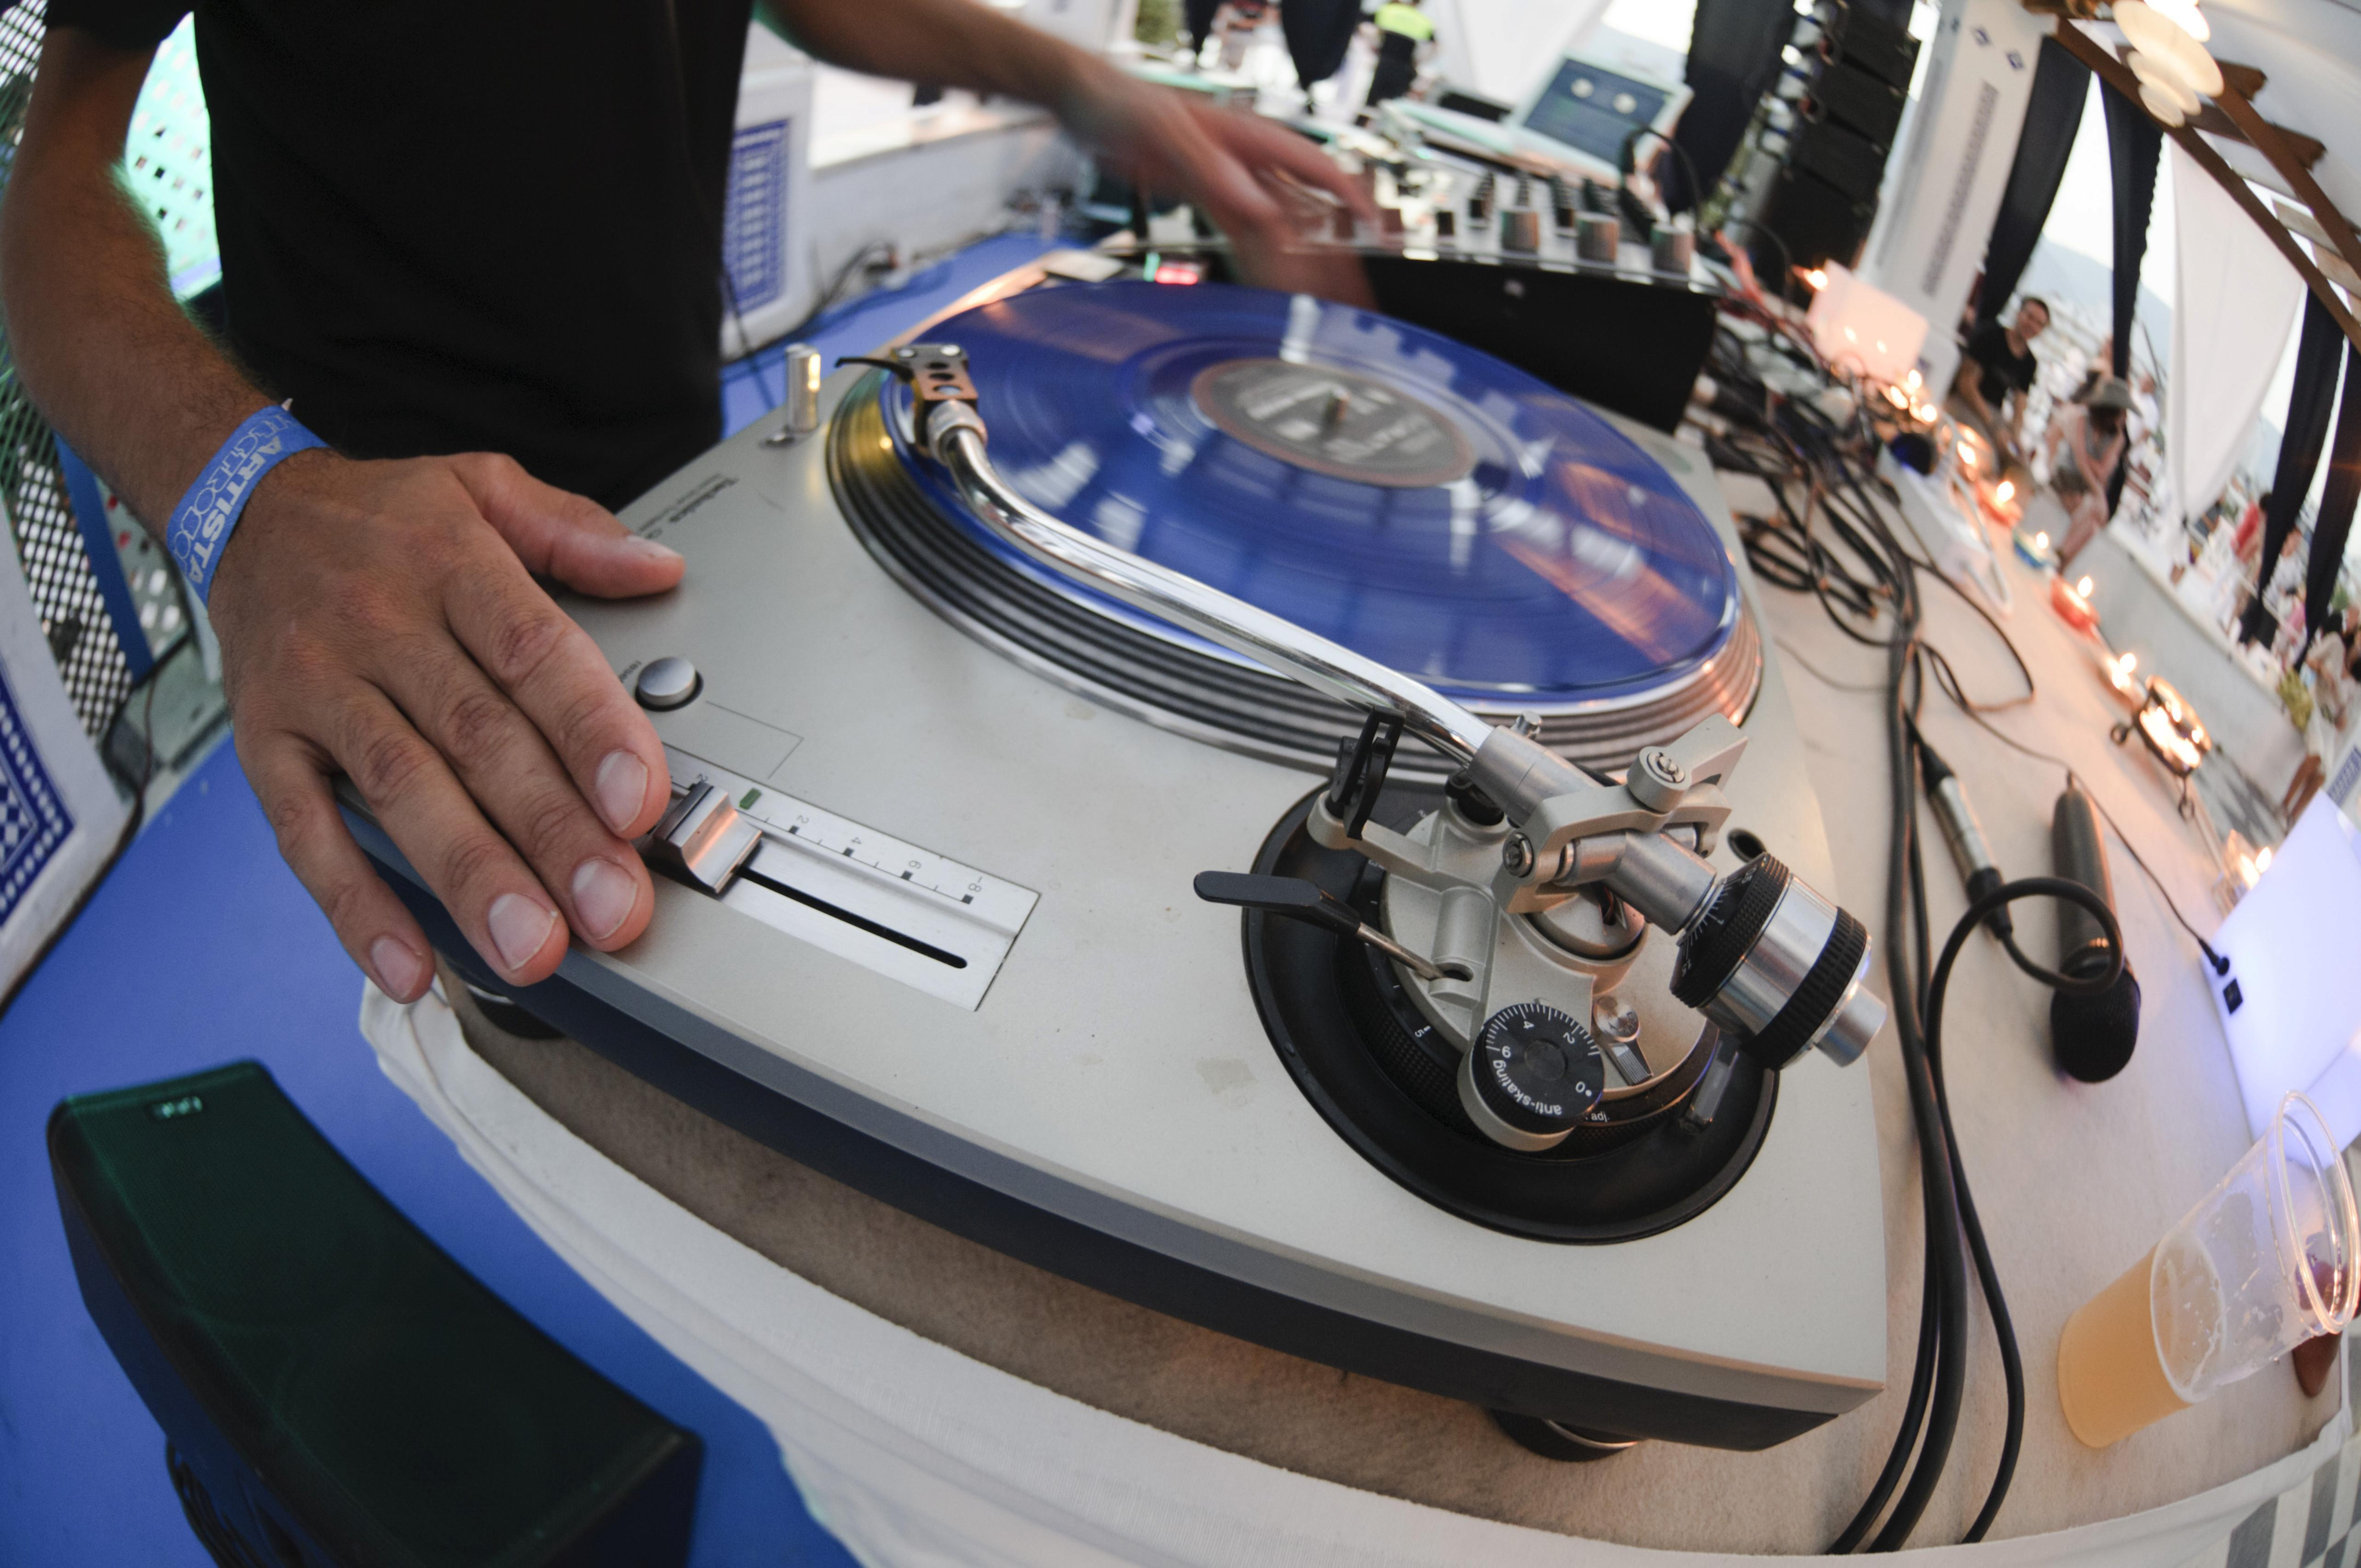 DJ using a blue scratch disc on a turntable during the Electrobeach Festival at Benidorm, Spain, Europe — iblmkb01864590.jpg